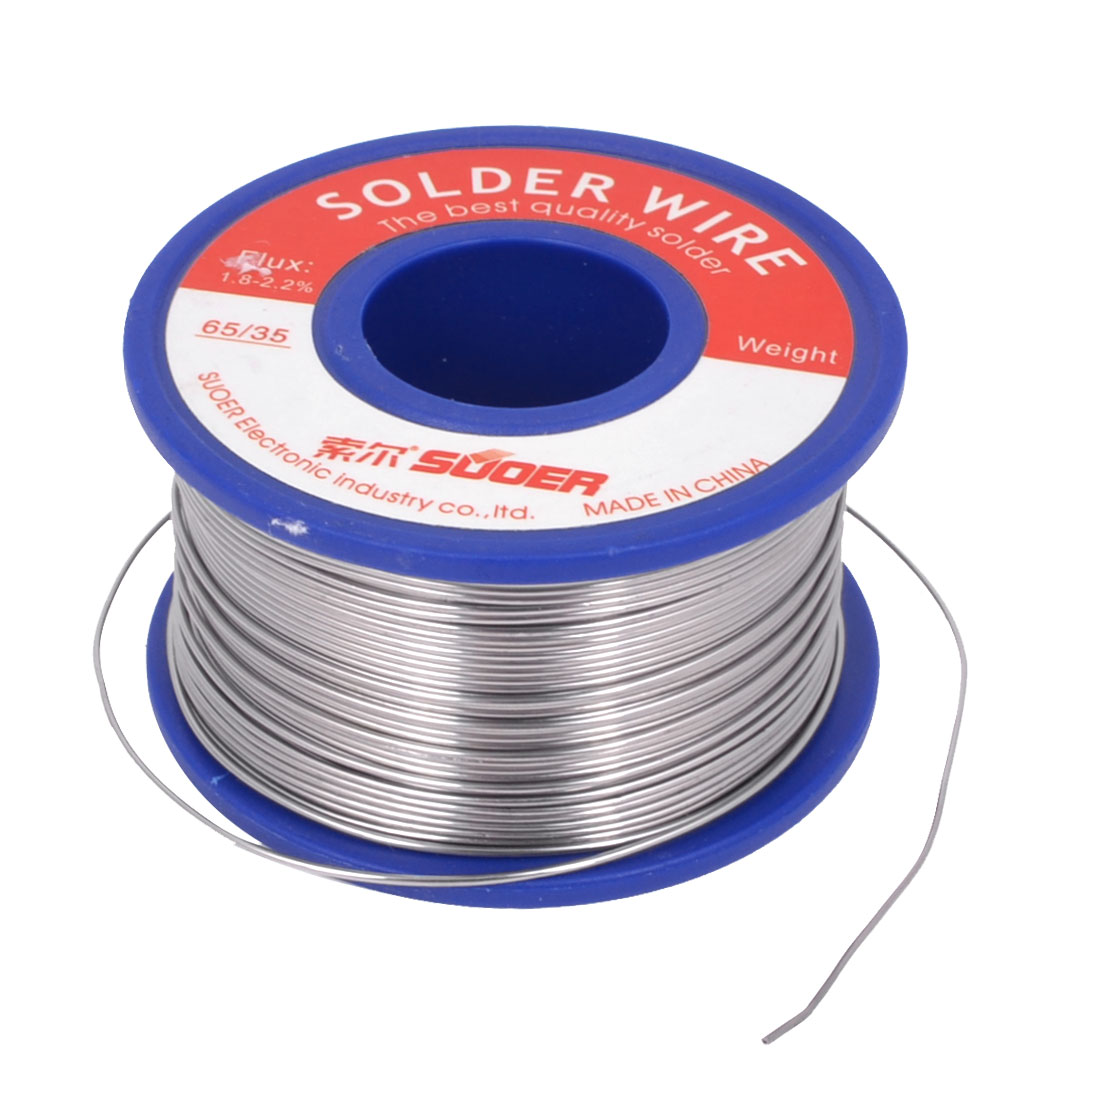 0.6mm 200g 65/35 1.8-2.2% Flux Tin Lead Roll Solder Wire Soldering Welding Reel